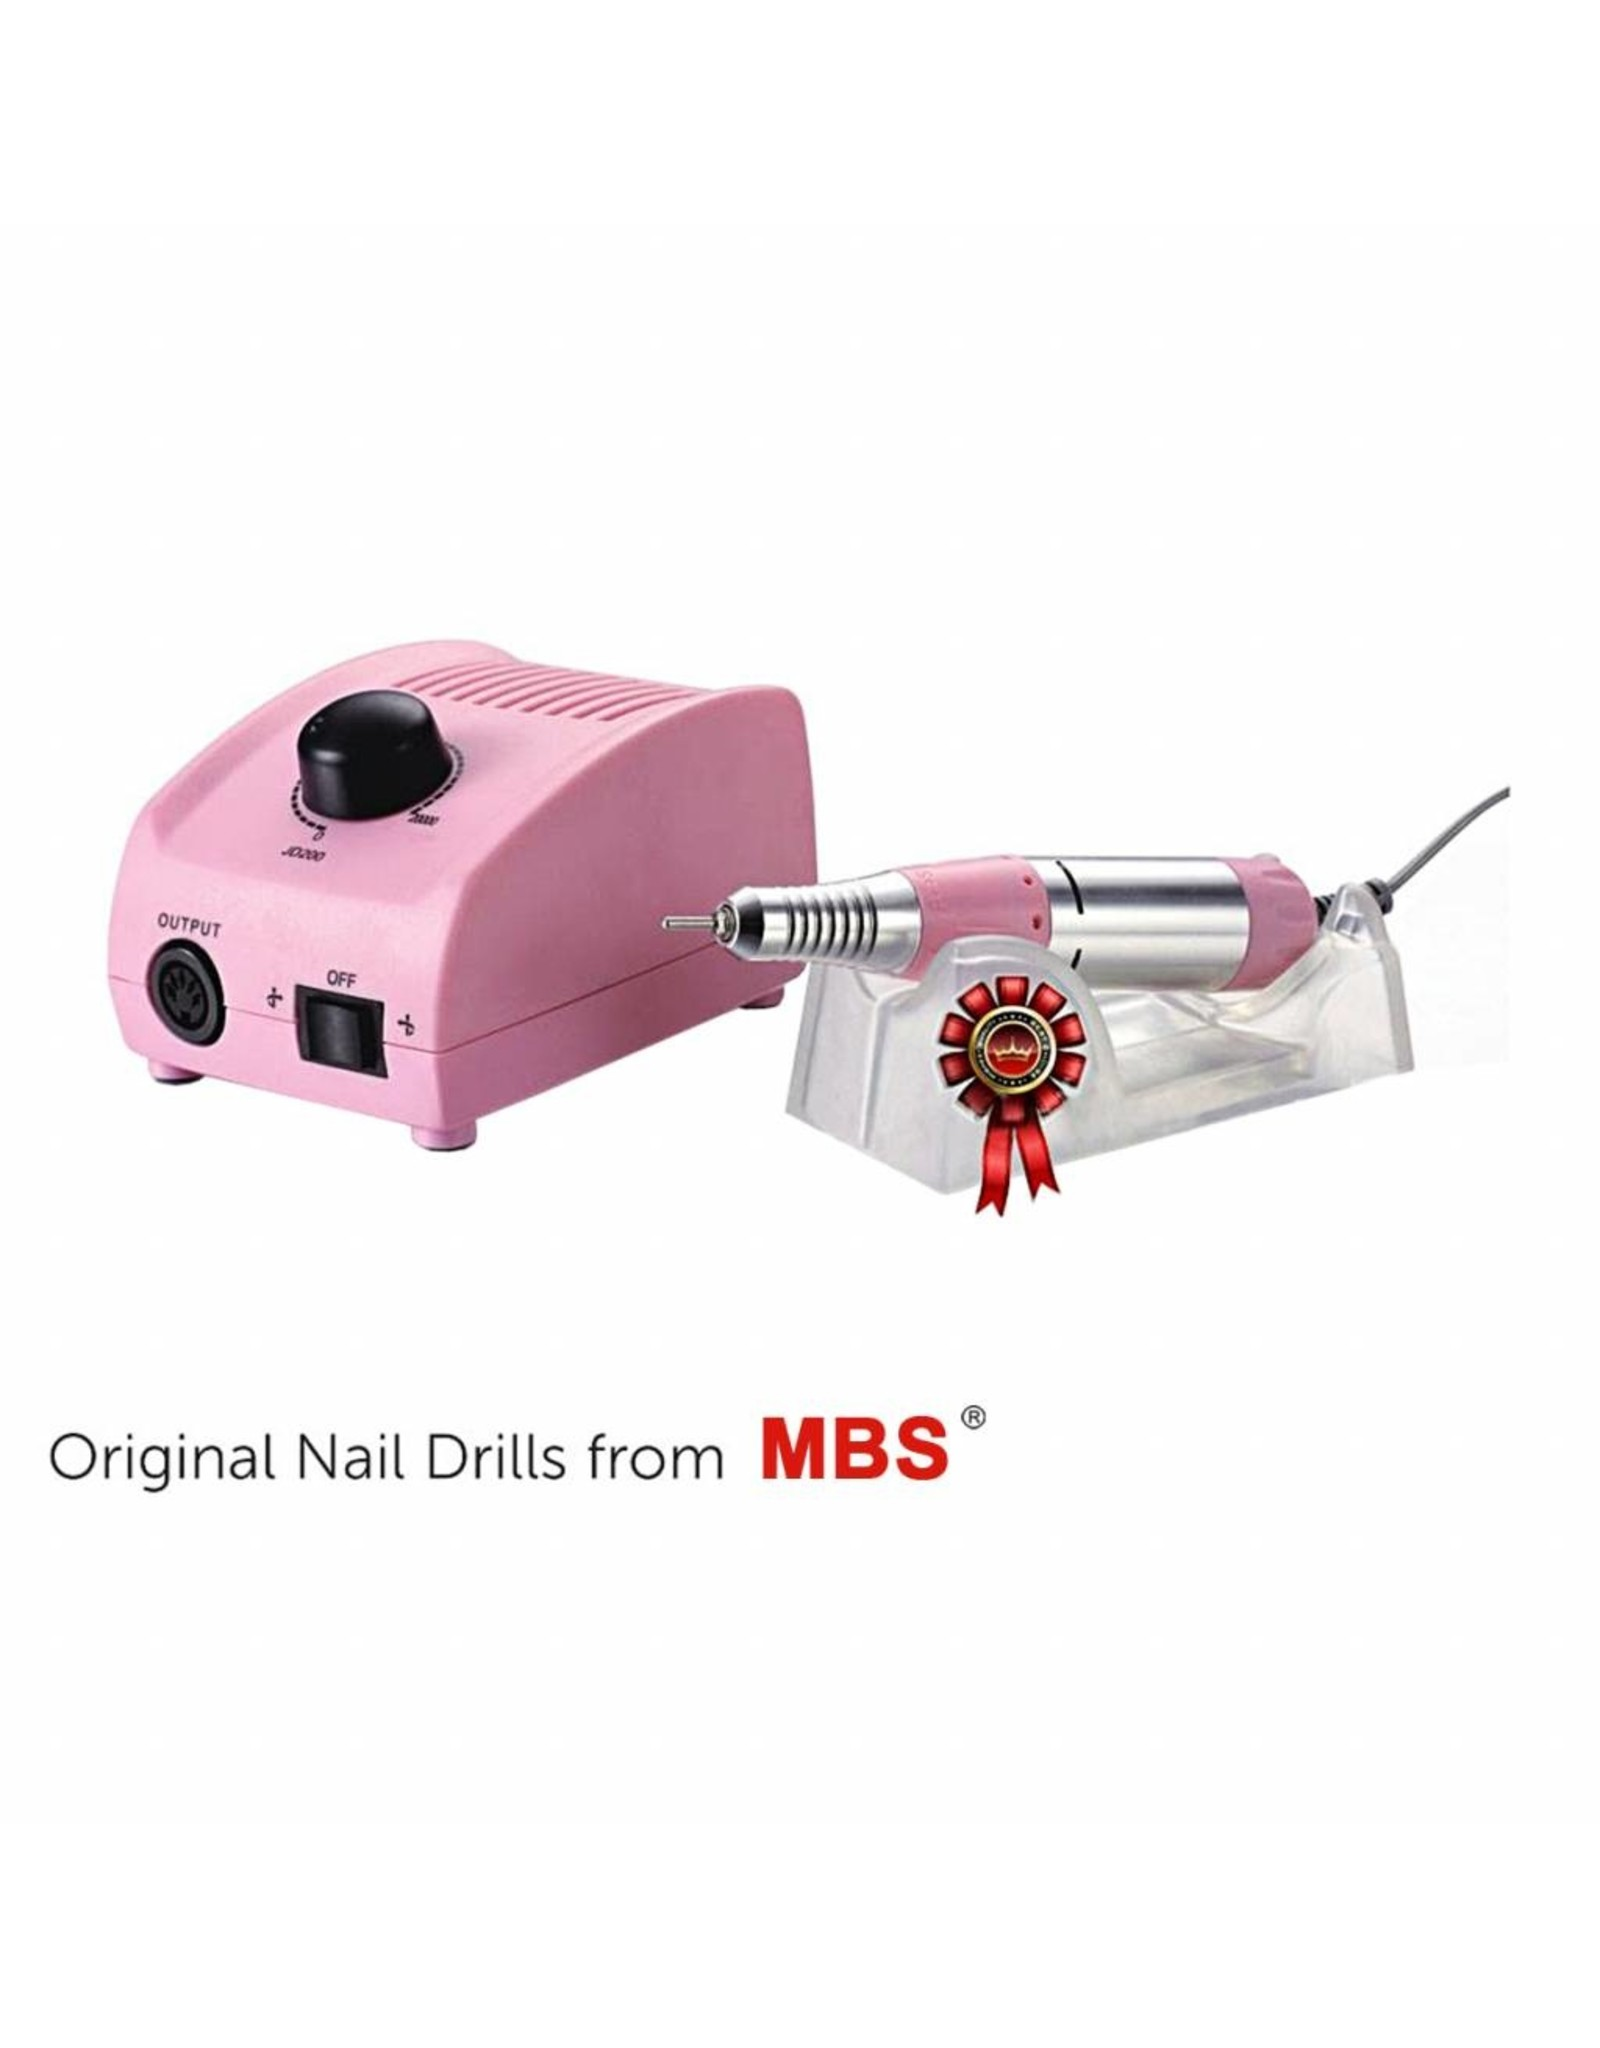 Mega Beauty Shop® Nagelfrees JD200 Roze Originele MBS® + Keramische frees